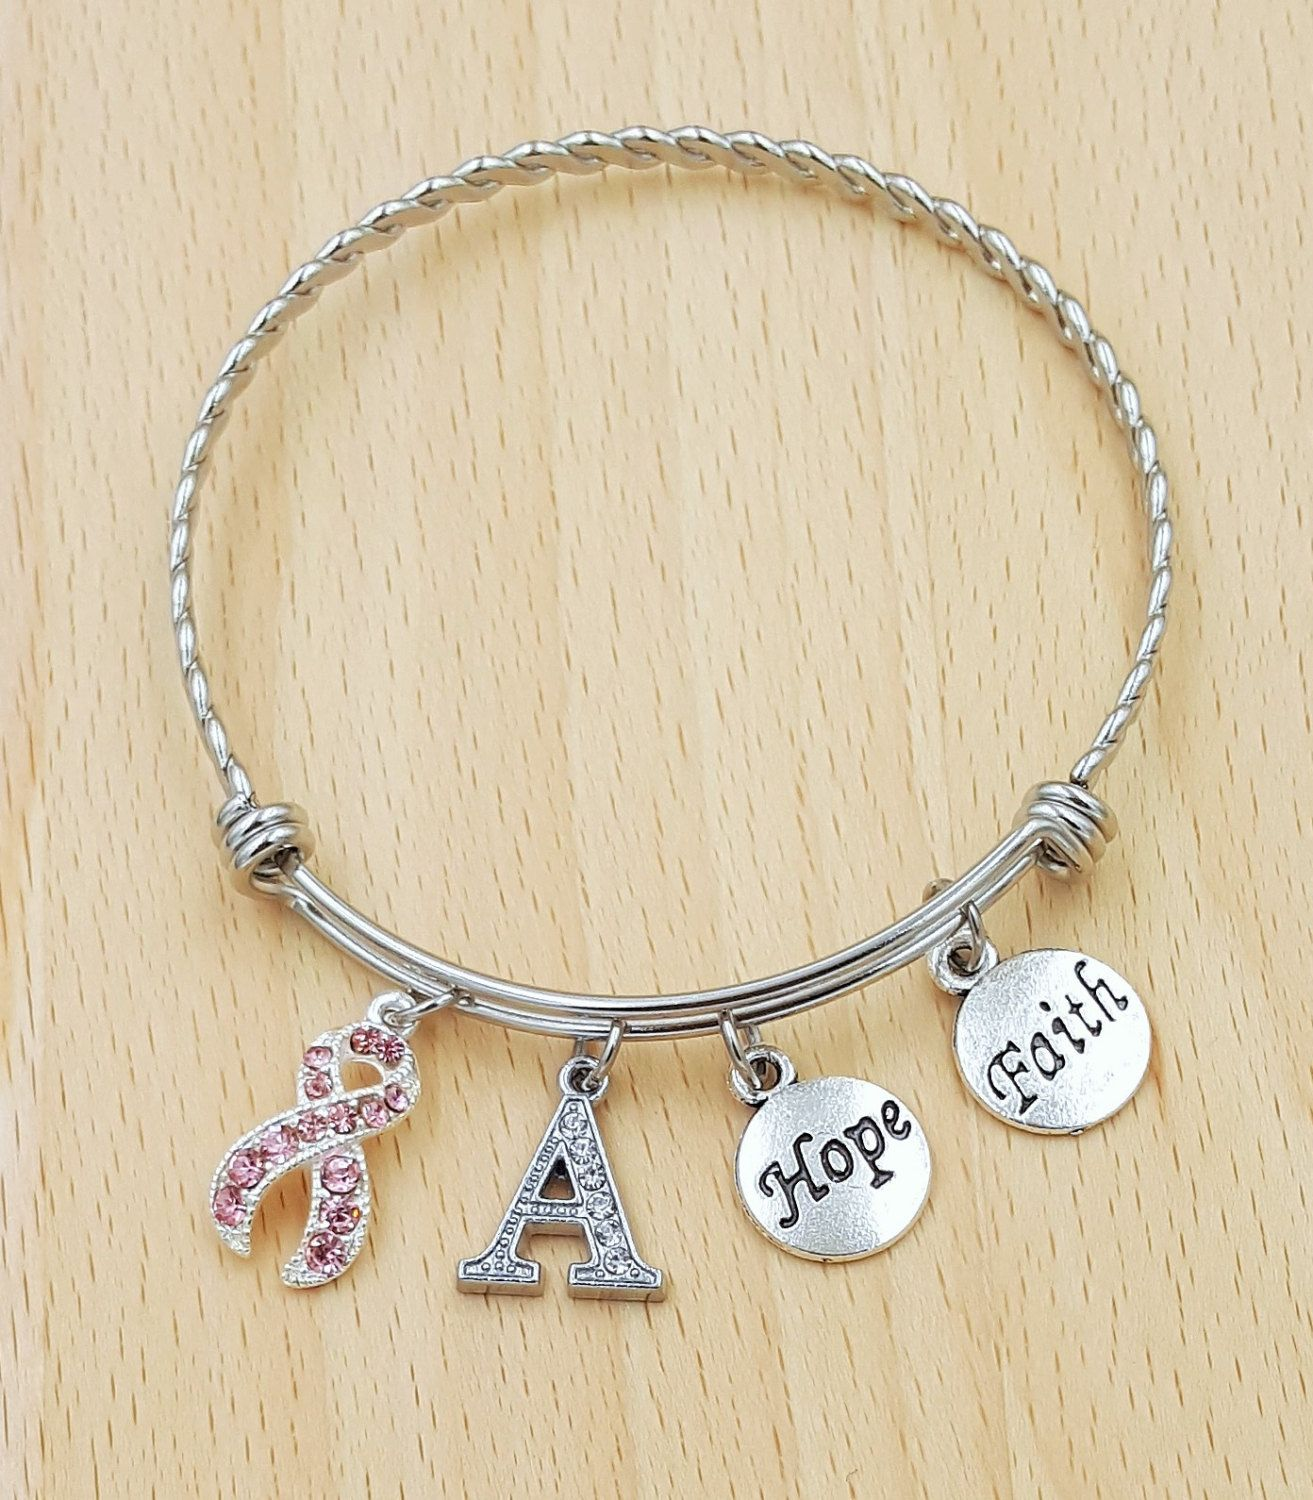 survivor jewelry fullxfull bracelet motivational charm gallery fighter up never breast il listing cancer photo give